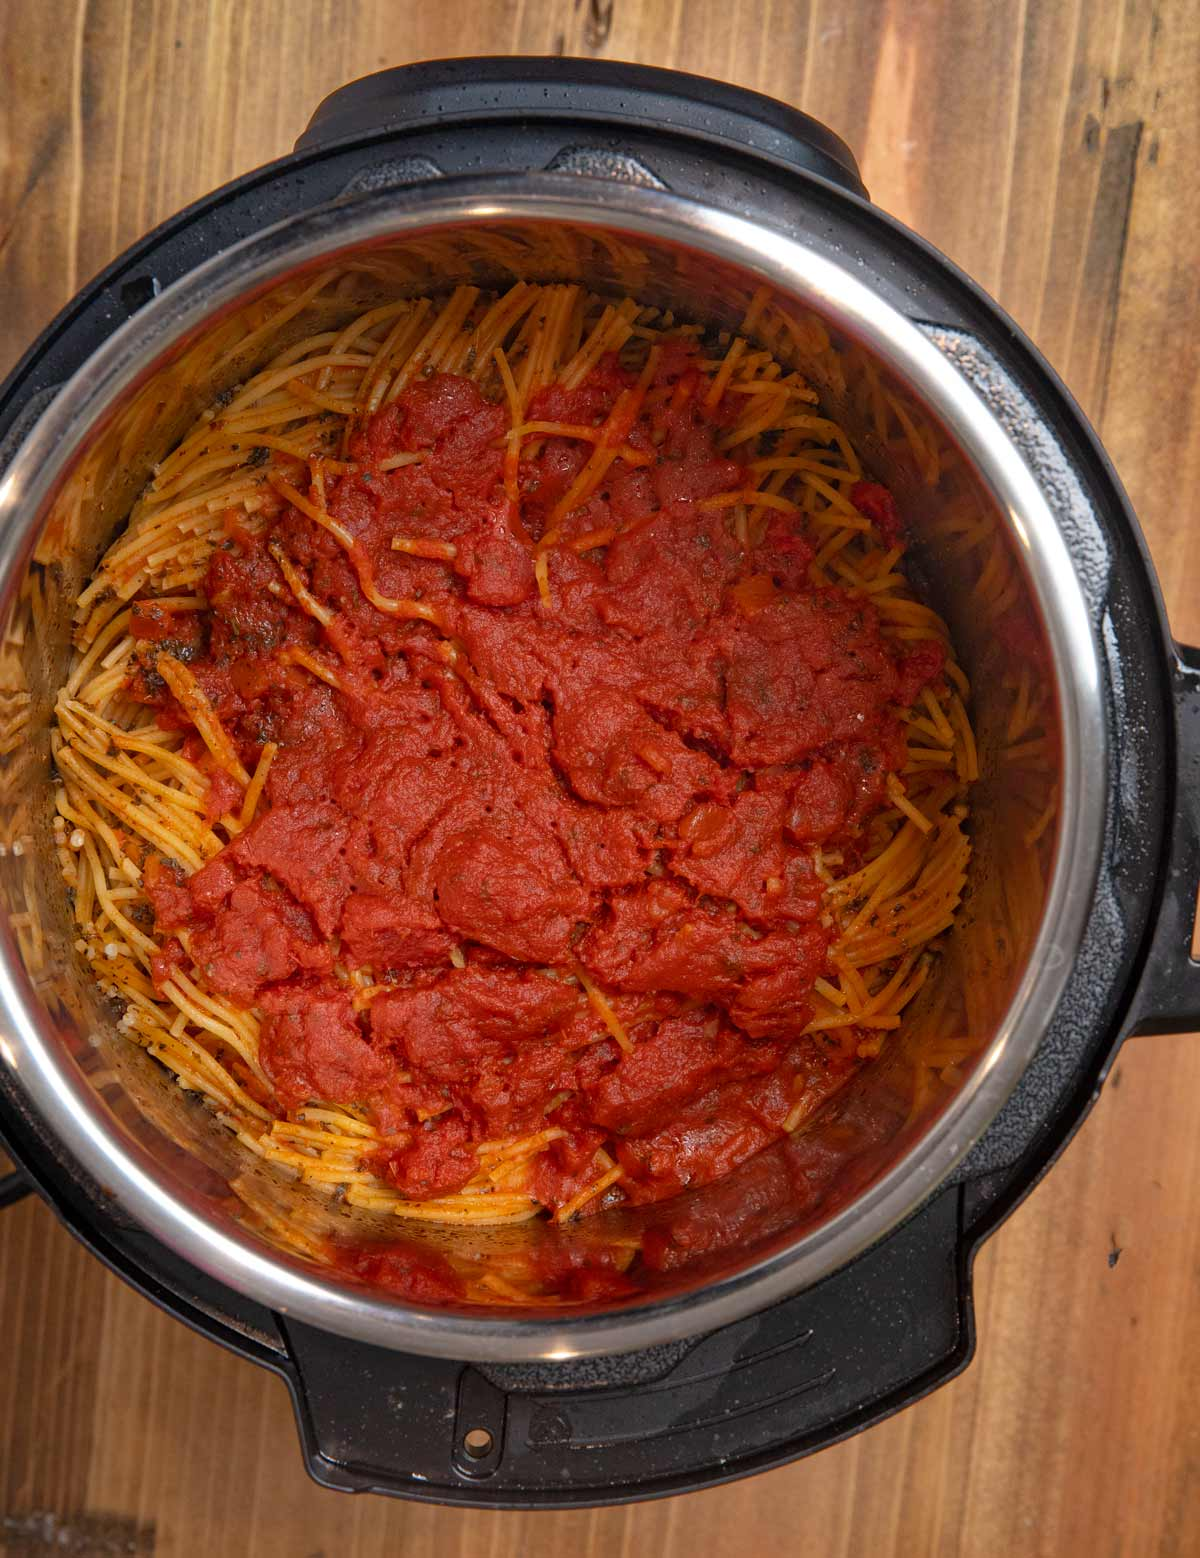 Instant Pot Spaghetti and Meatballs cooked spaghetti and pasta sauce in pressure cooker